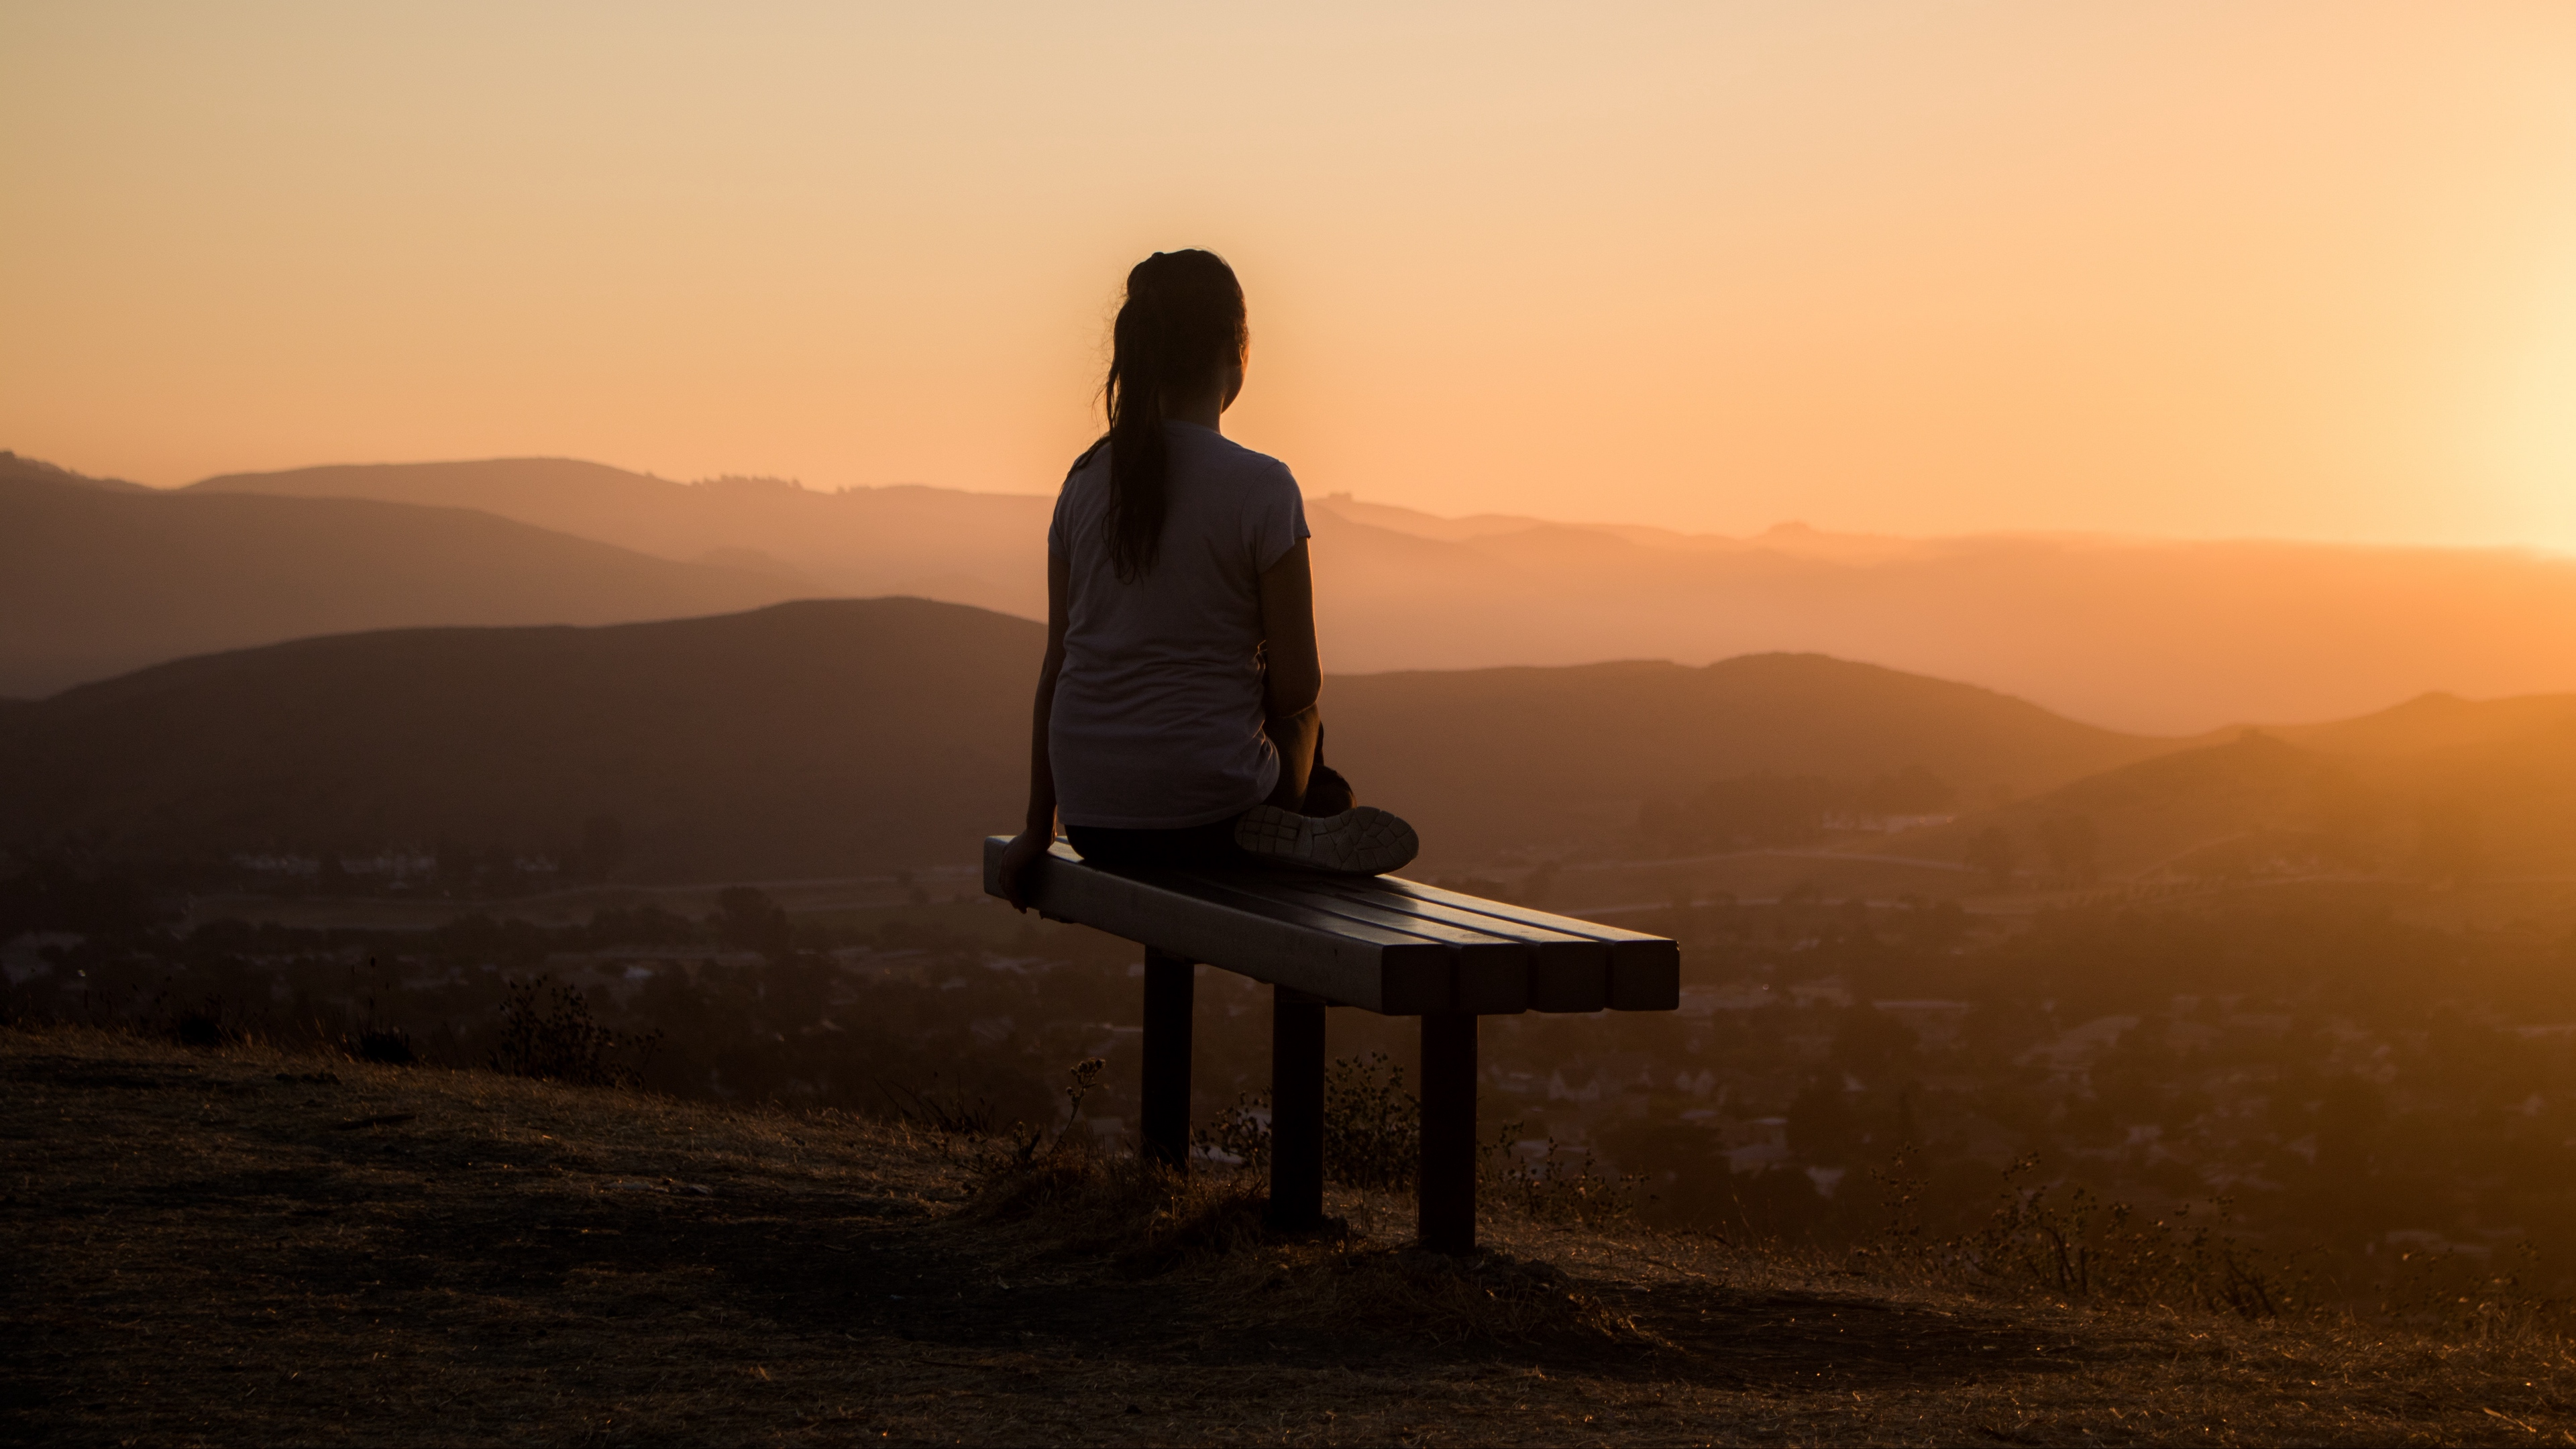 bench alone solitude sunset mountains girl 4k 1541117209 - bench, alone, solitude, sunset, mountains, girl 4k - solitude, Bench, Alone